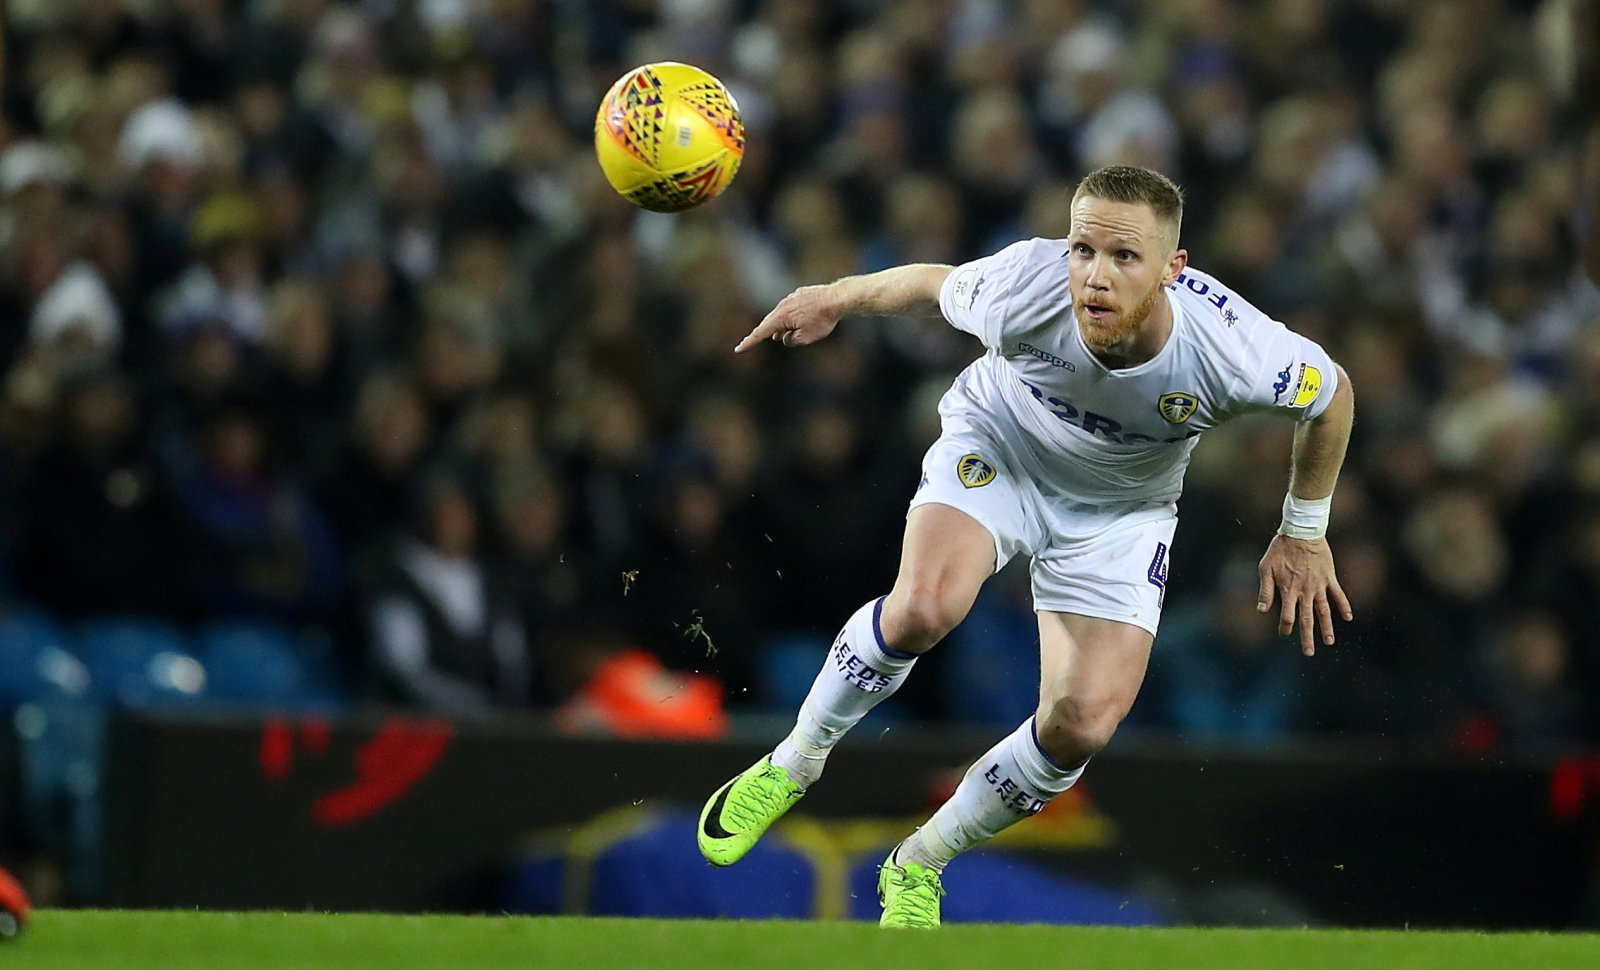 Leeds United: Adam Forshaw unavailable for Derby County clash